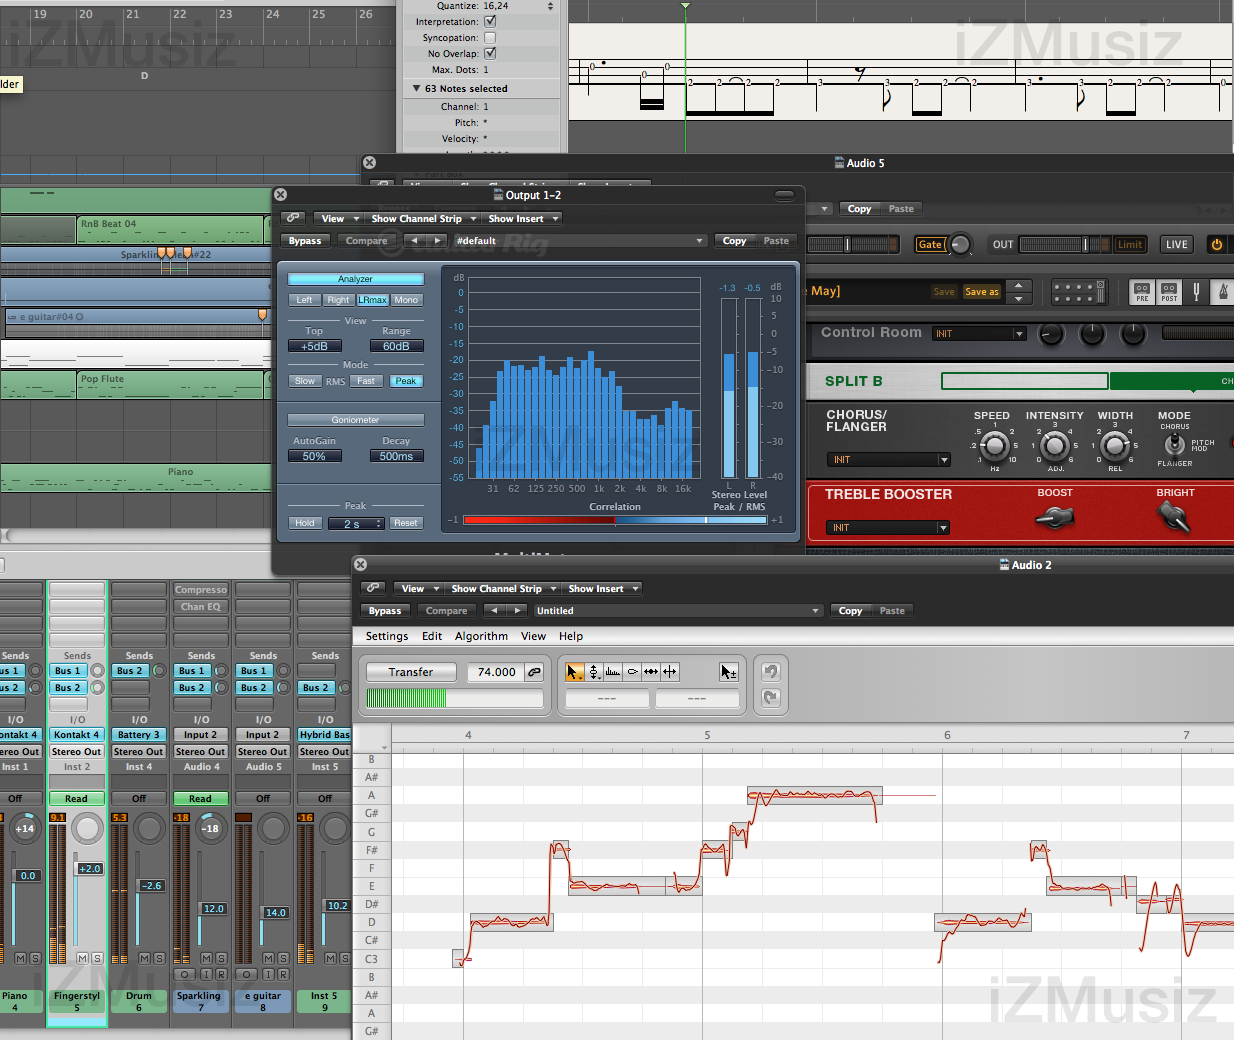 logic studio 9 with arrange and mixing windows, bass guitar tab score, guitar rig, fft meter, lead vocal pitch and timing editing